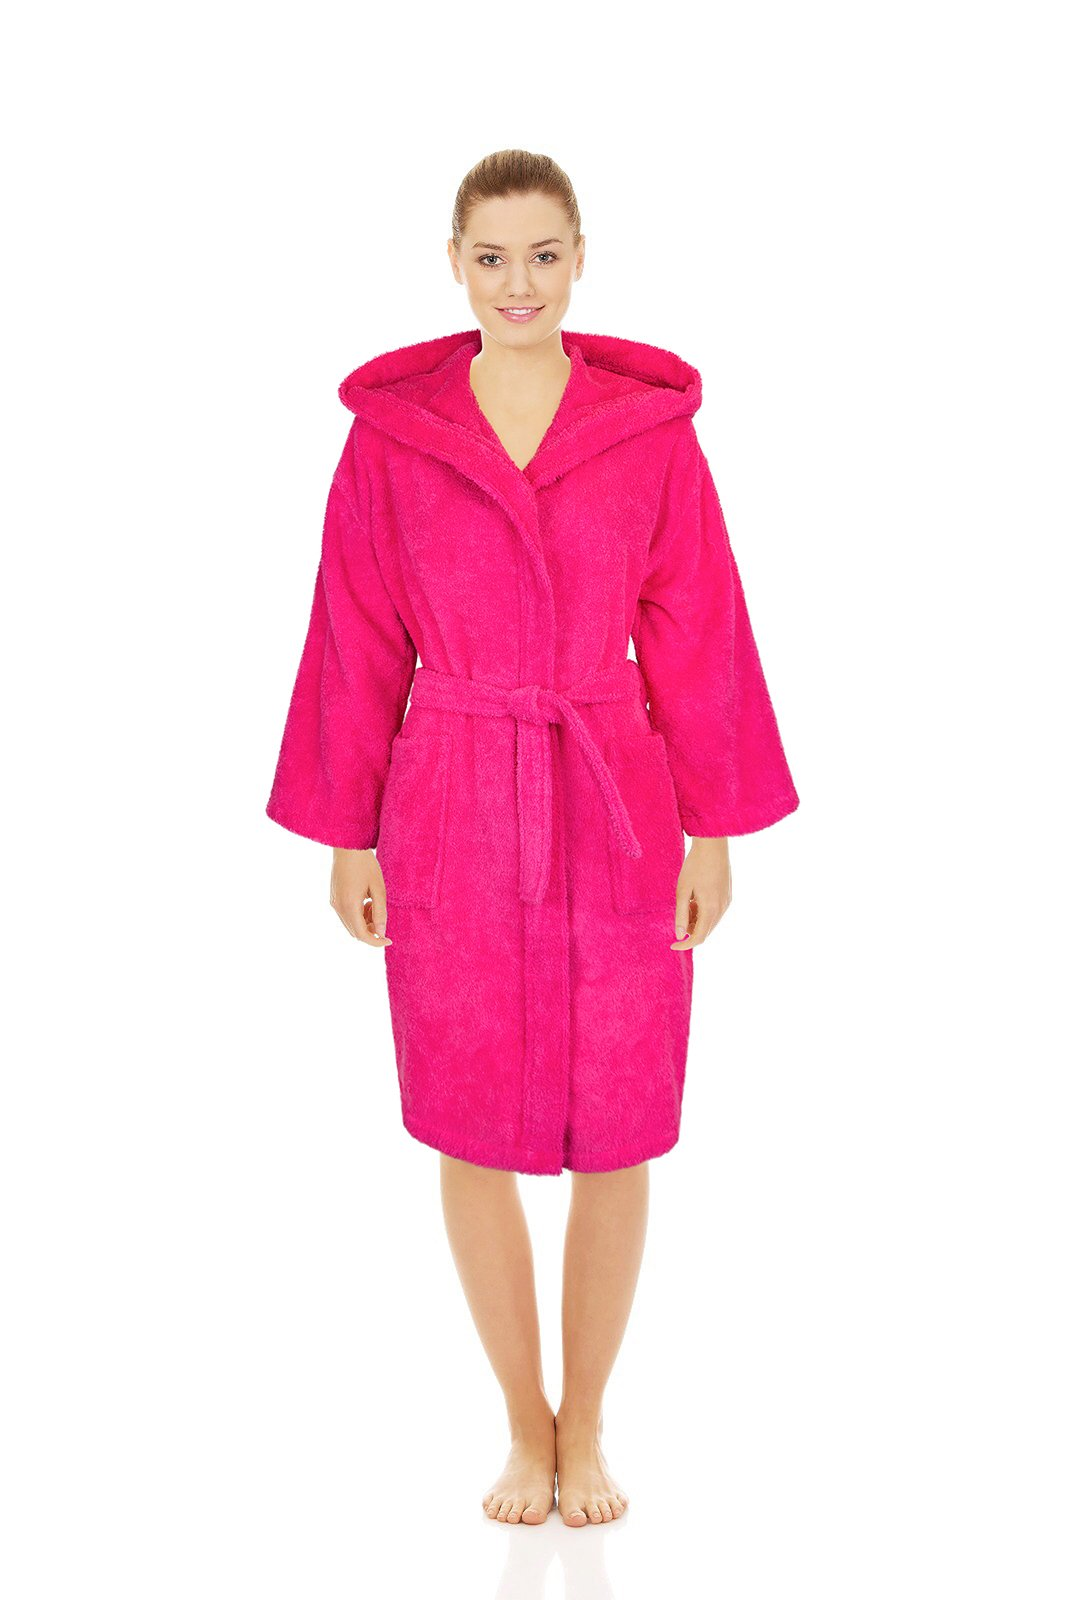 Silken Teenager Robe 100% Turkish Cotton Terry Hooded Bathrobe Extremely Absorbent Towel (Hot Pink, Large | 36'' | 7-11 Ages)